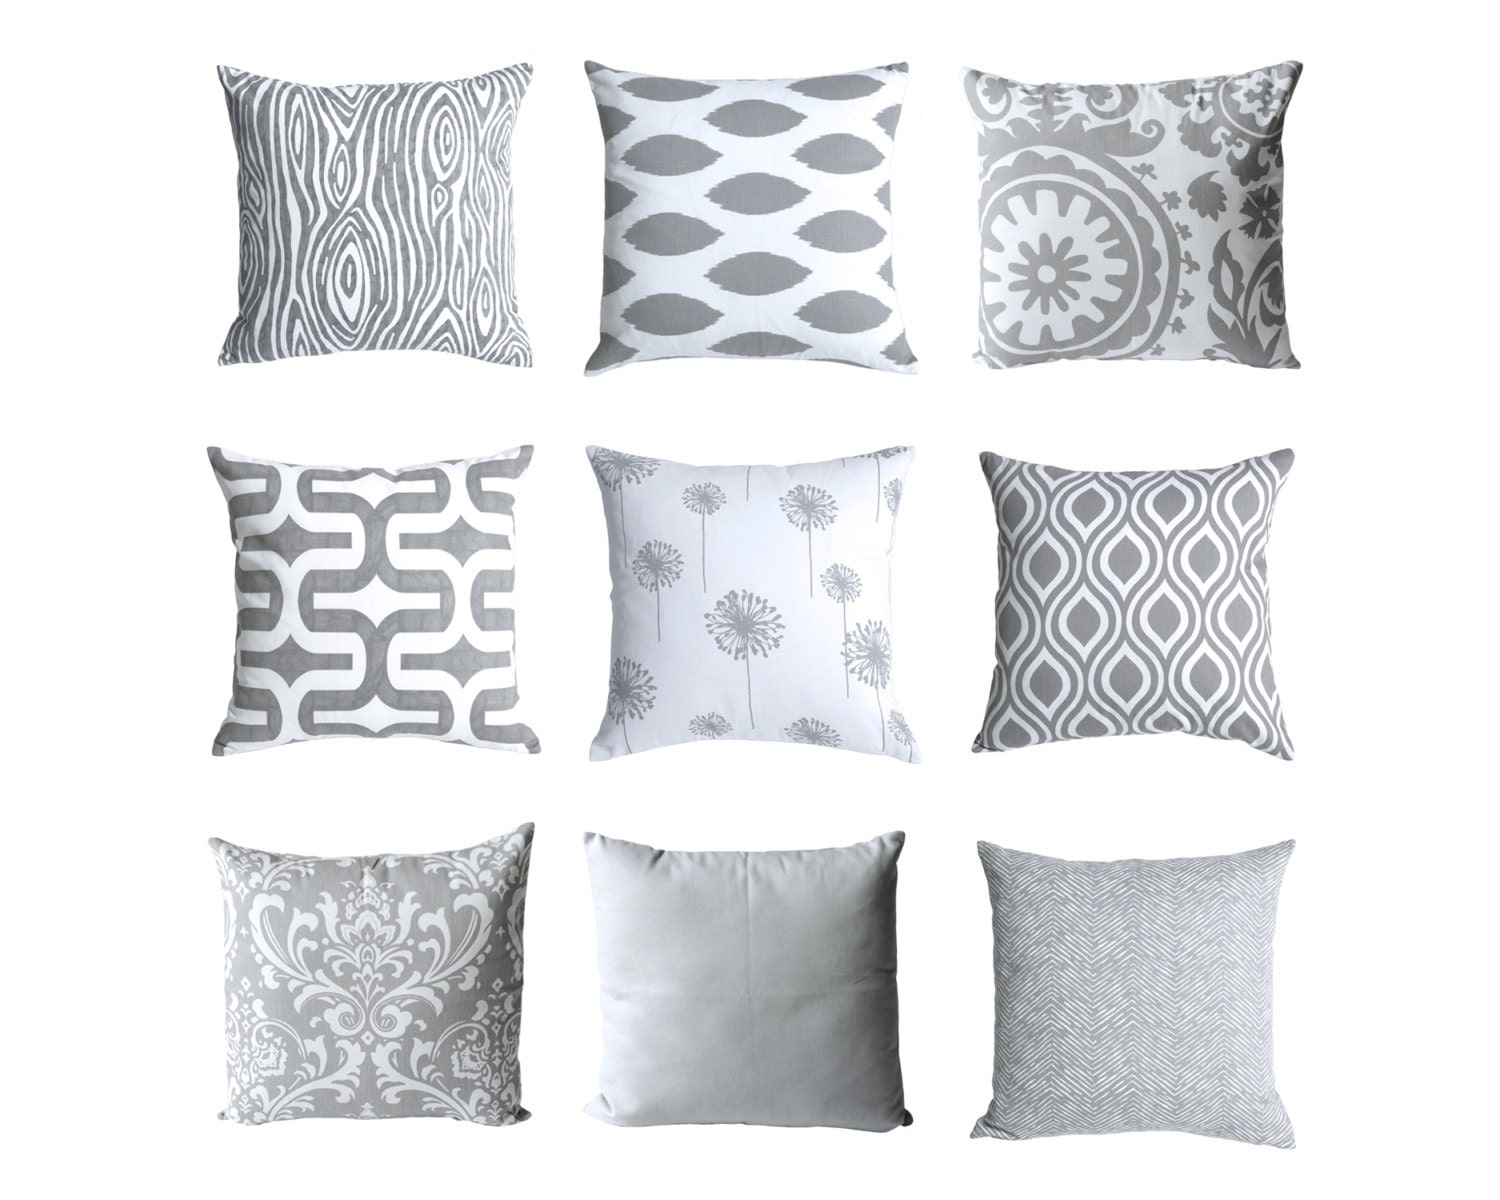 Decorative Pillow Covers With Zippers : One Grey Decorative Throw Zipper Pillow Covers 18x18 by Pillomatic